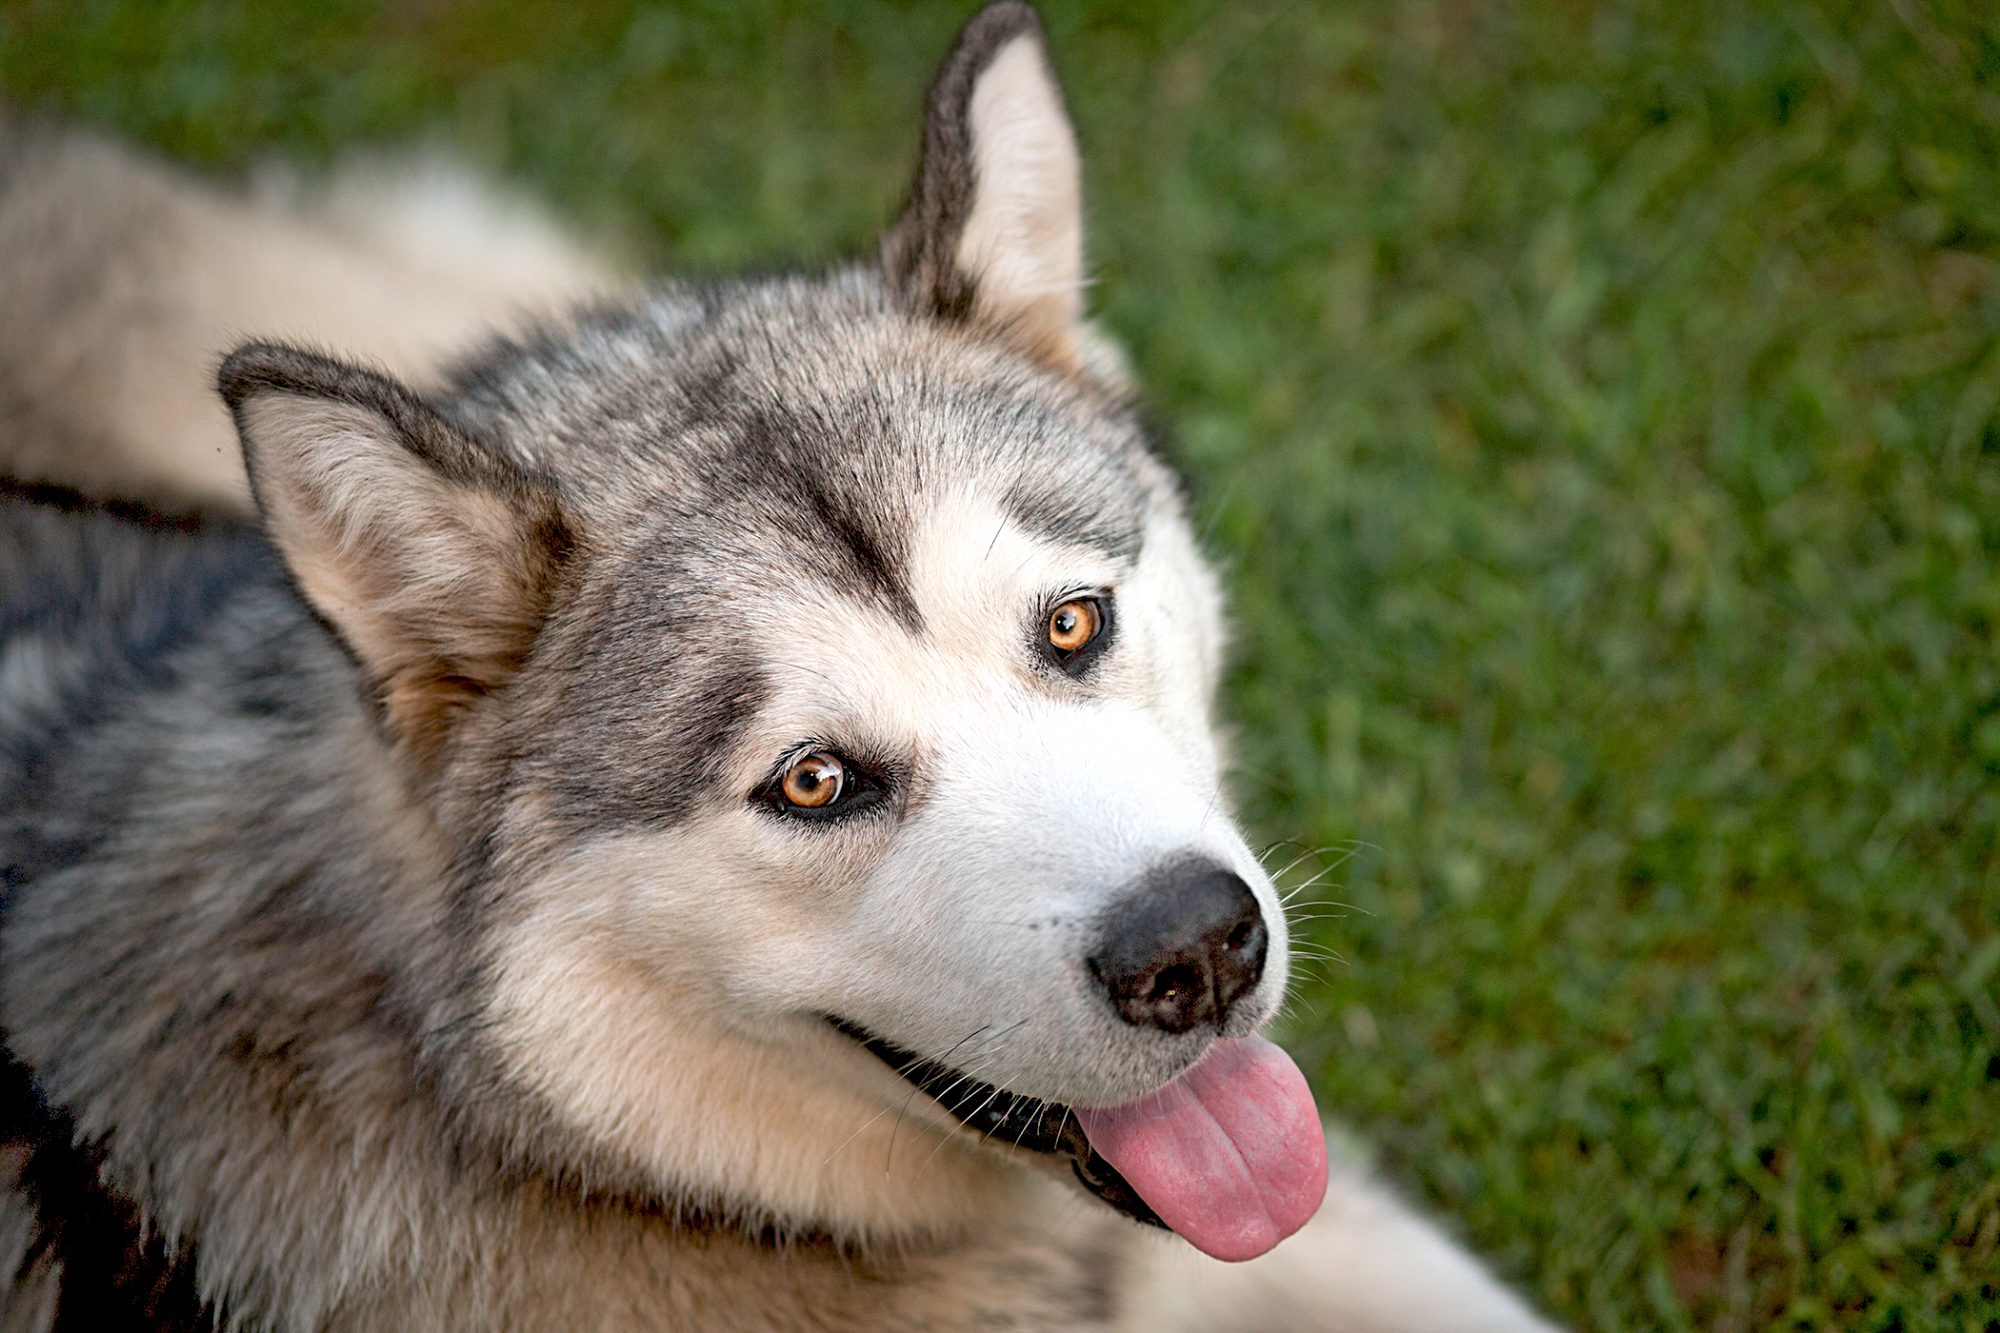 alaskan malamute laying in grass sticking tongue out